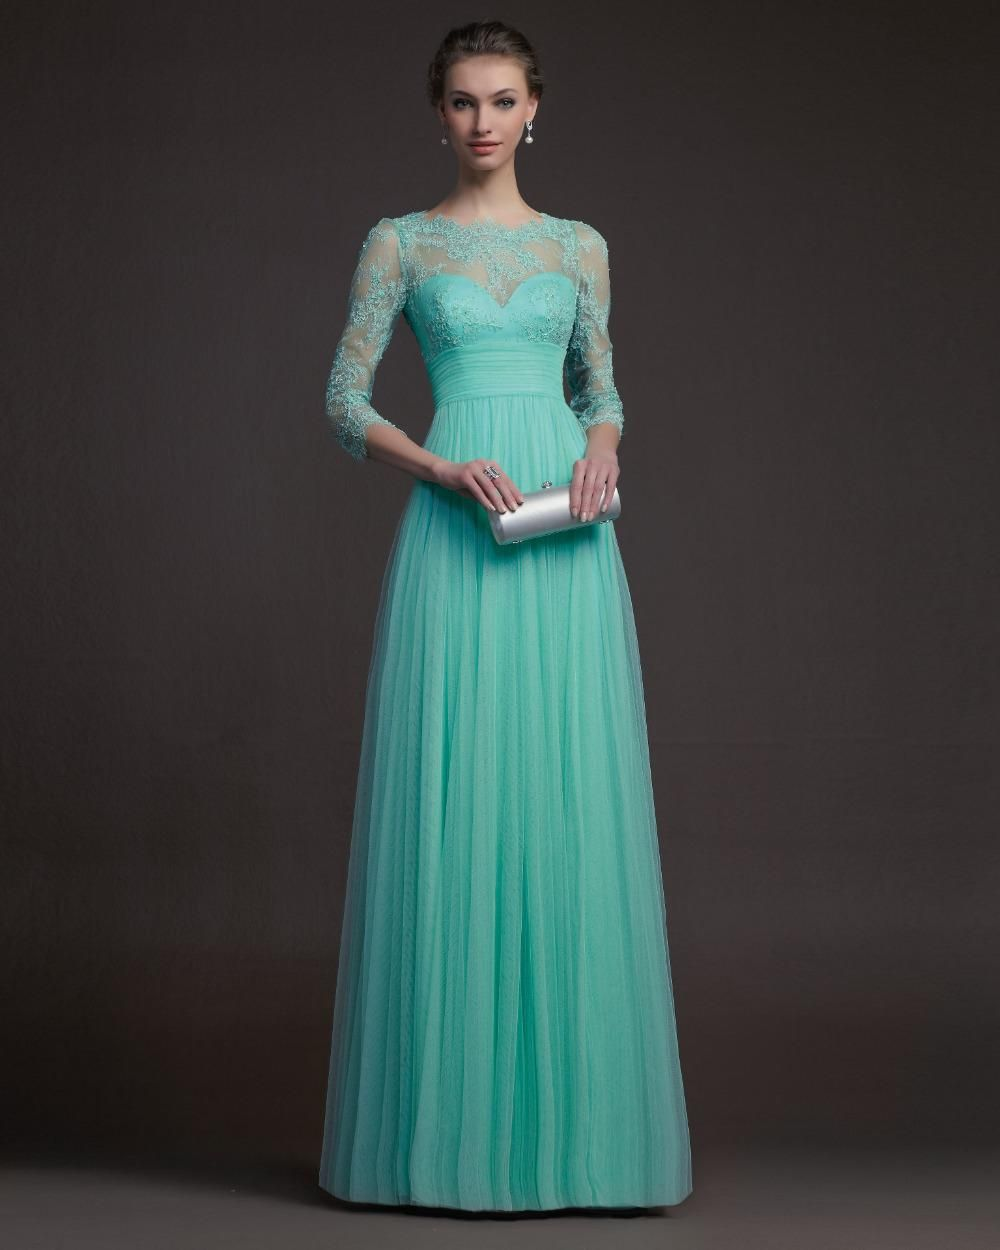 Wholesale prom dress buy turquoise tulle elegant lace prom dress